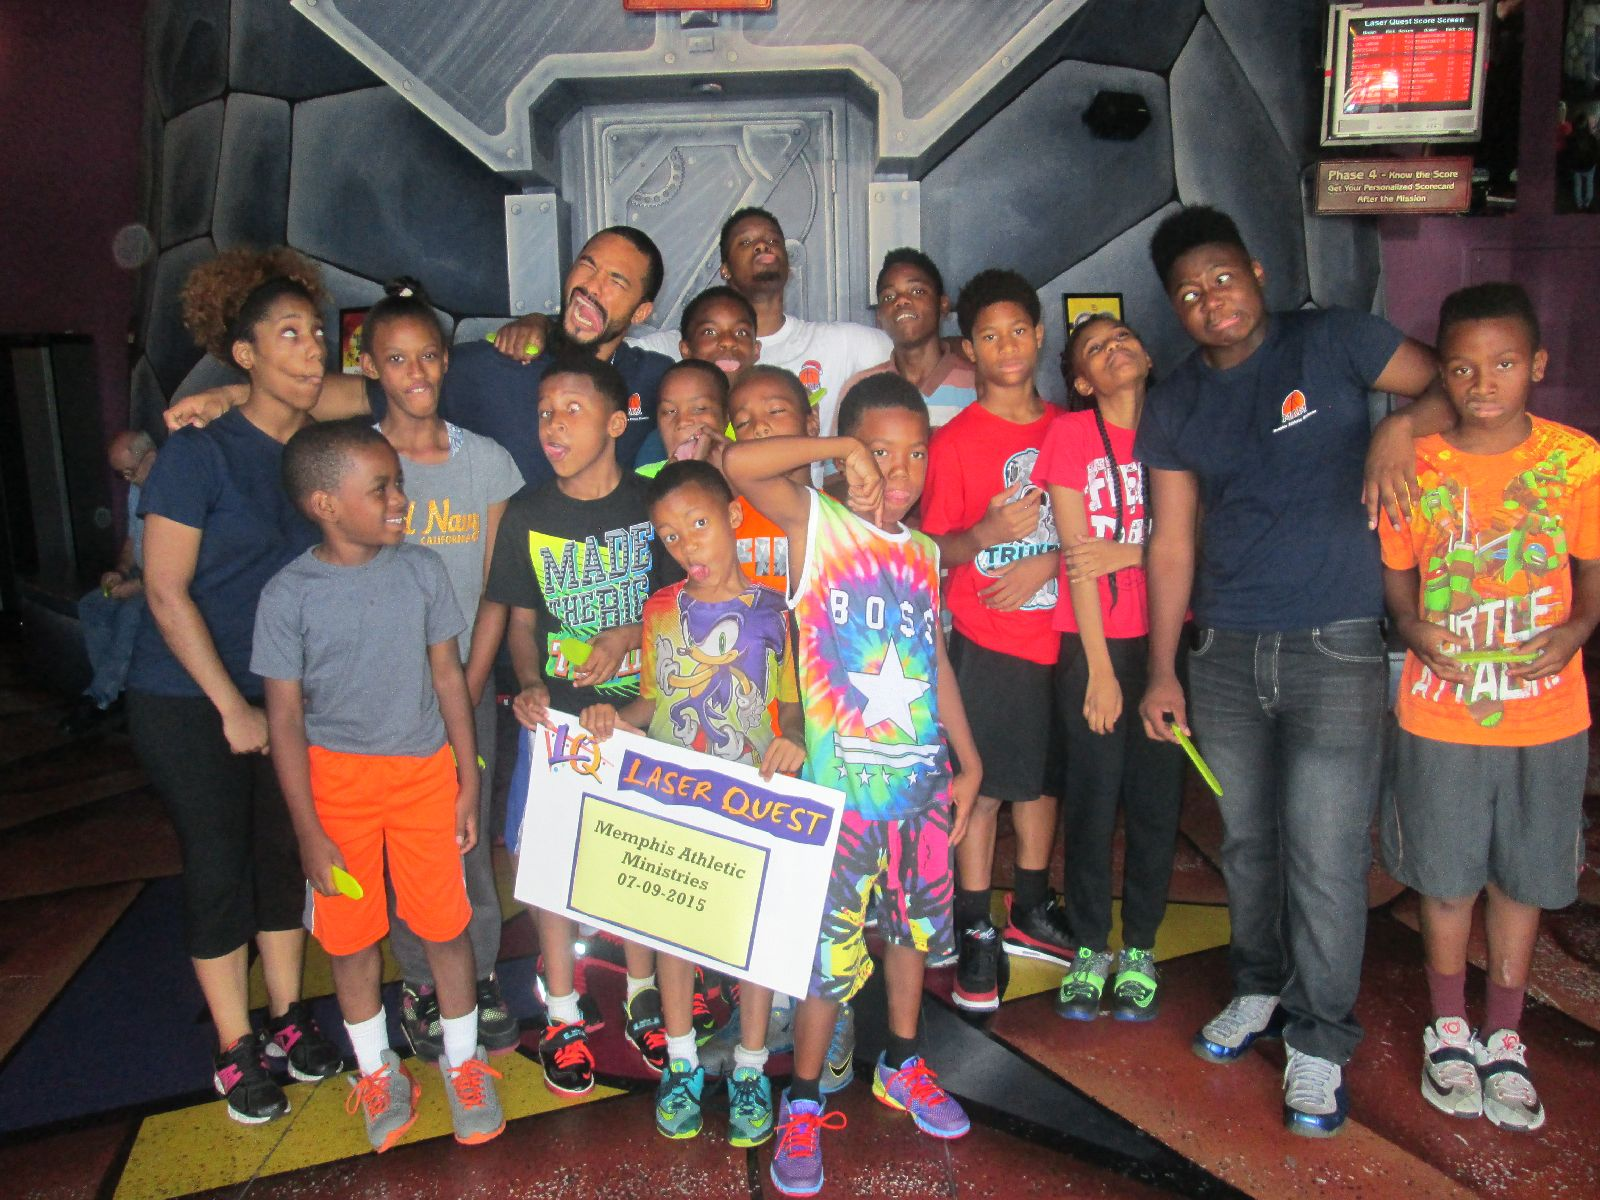 Fun Photo Friday – MAM Grizzlies kids love Laser Quest